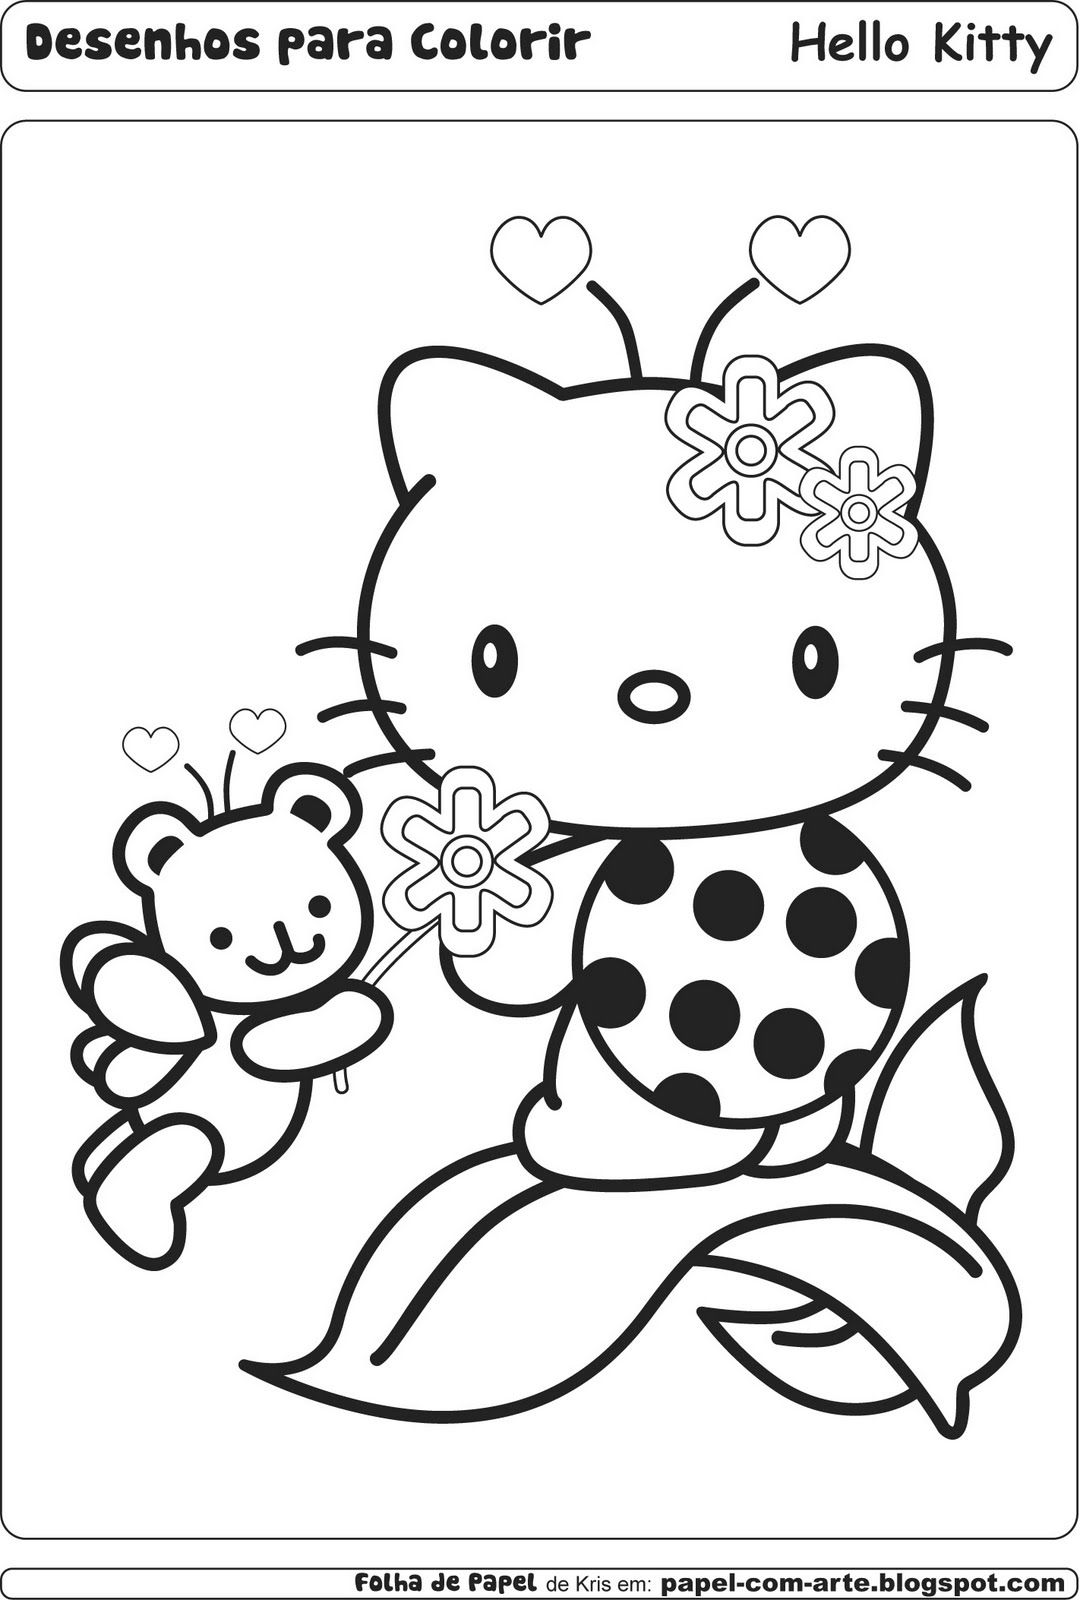 Ausmalbilder Hello Kitty Ballerina : Hello Kitty Hello Kitty Pinterest Hello Kitty Kitten And